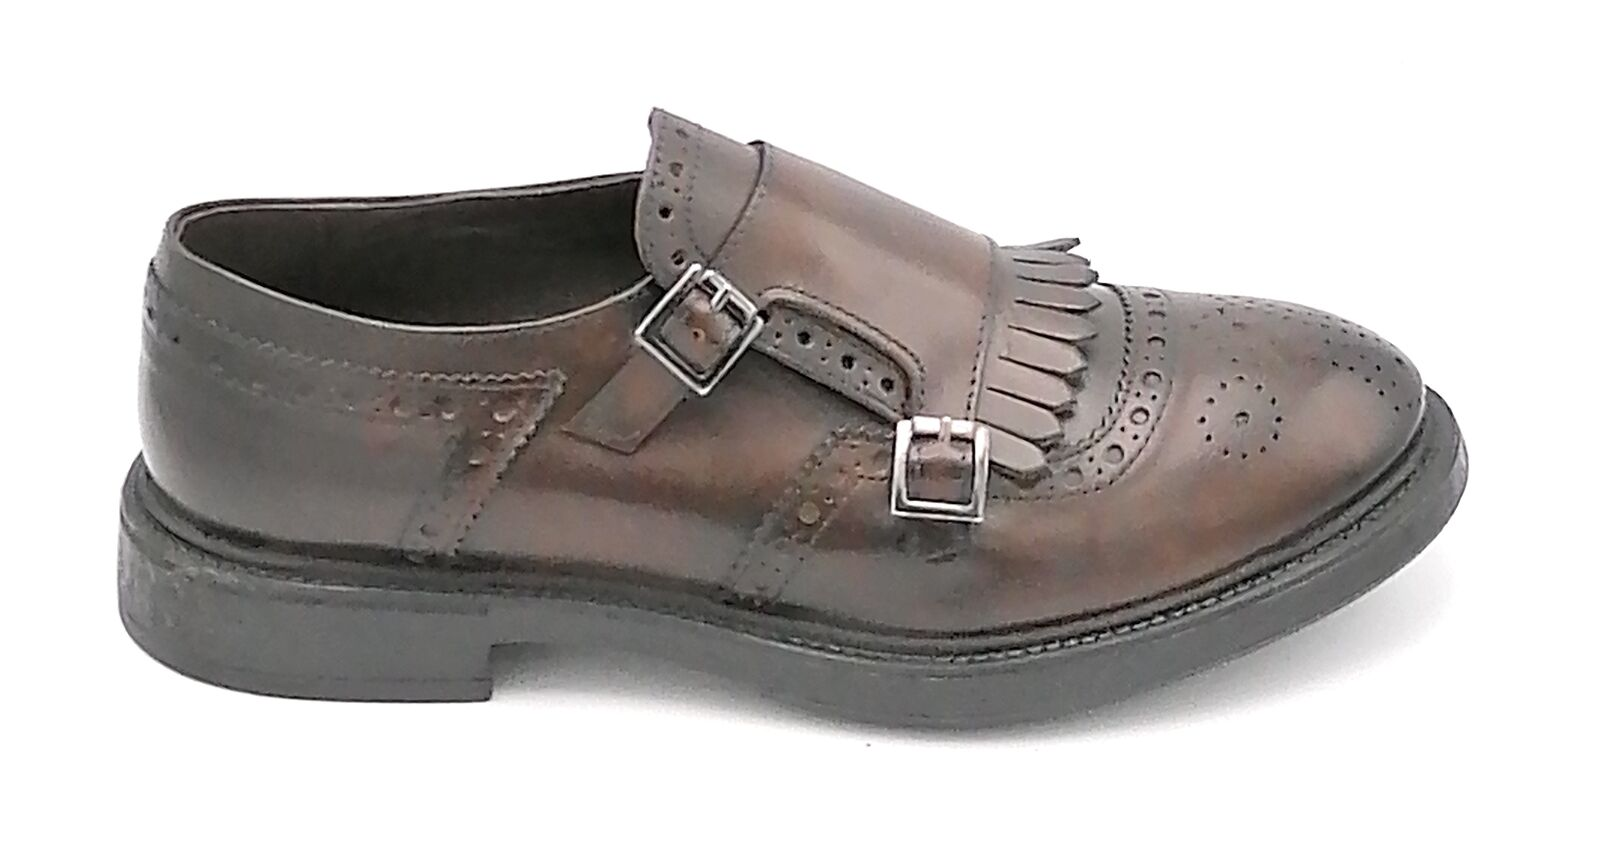 Tom Gout TG630 Shoe Leather Embroidery English Buckles Fringe 0-1